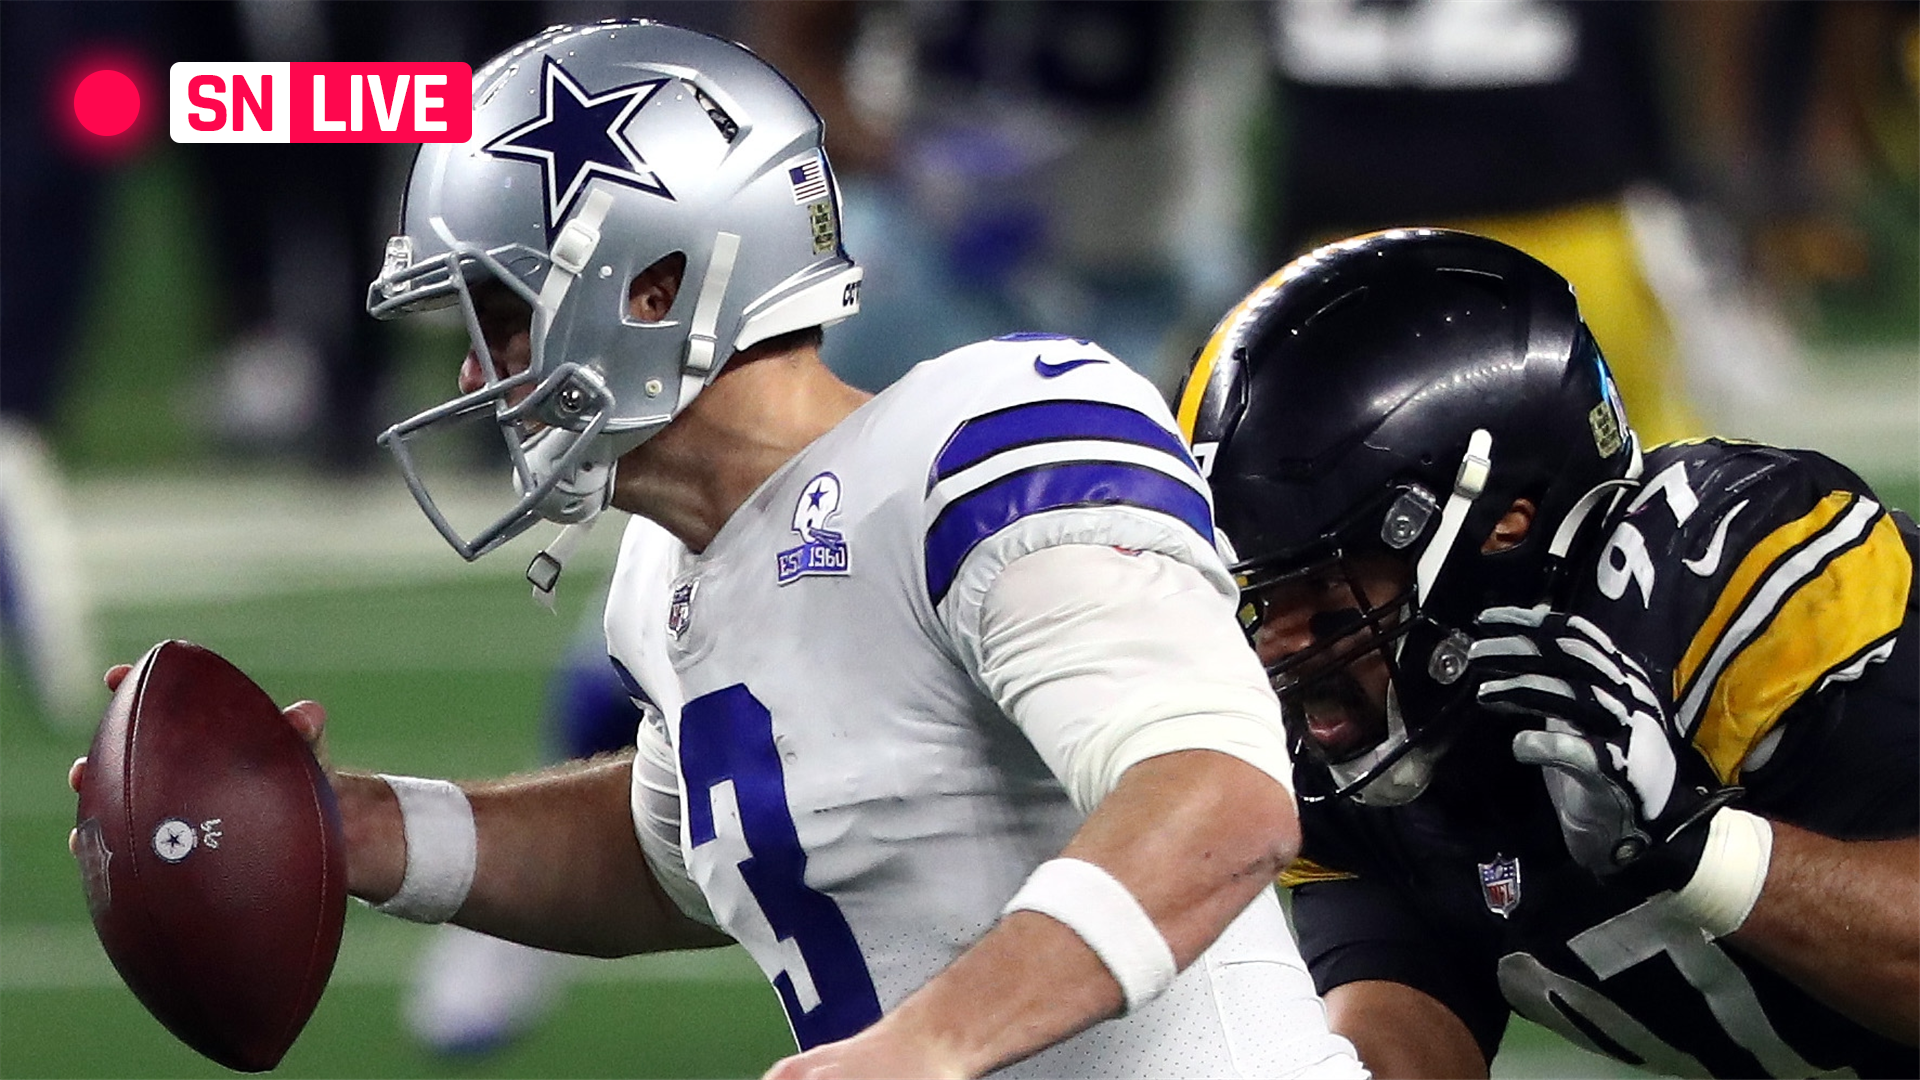 Steelers vs Cowboys live score, updates, highlights from the 2021 NFL Hall of Fame Game